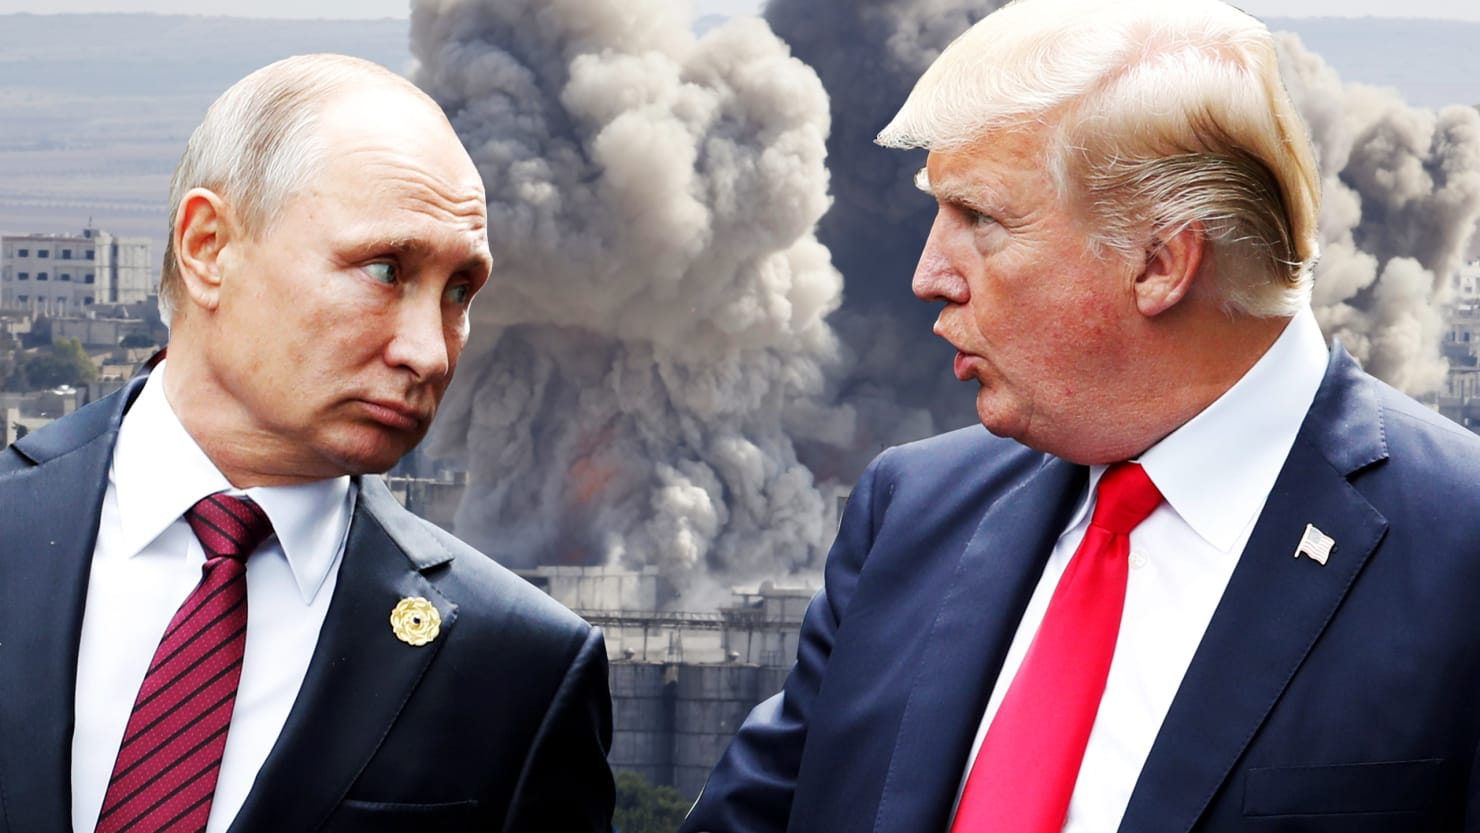 Fear For War: Tensions Rise Globally Amidst Russia and US Tensions | Newslibre